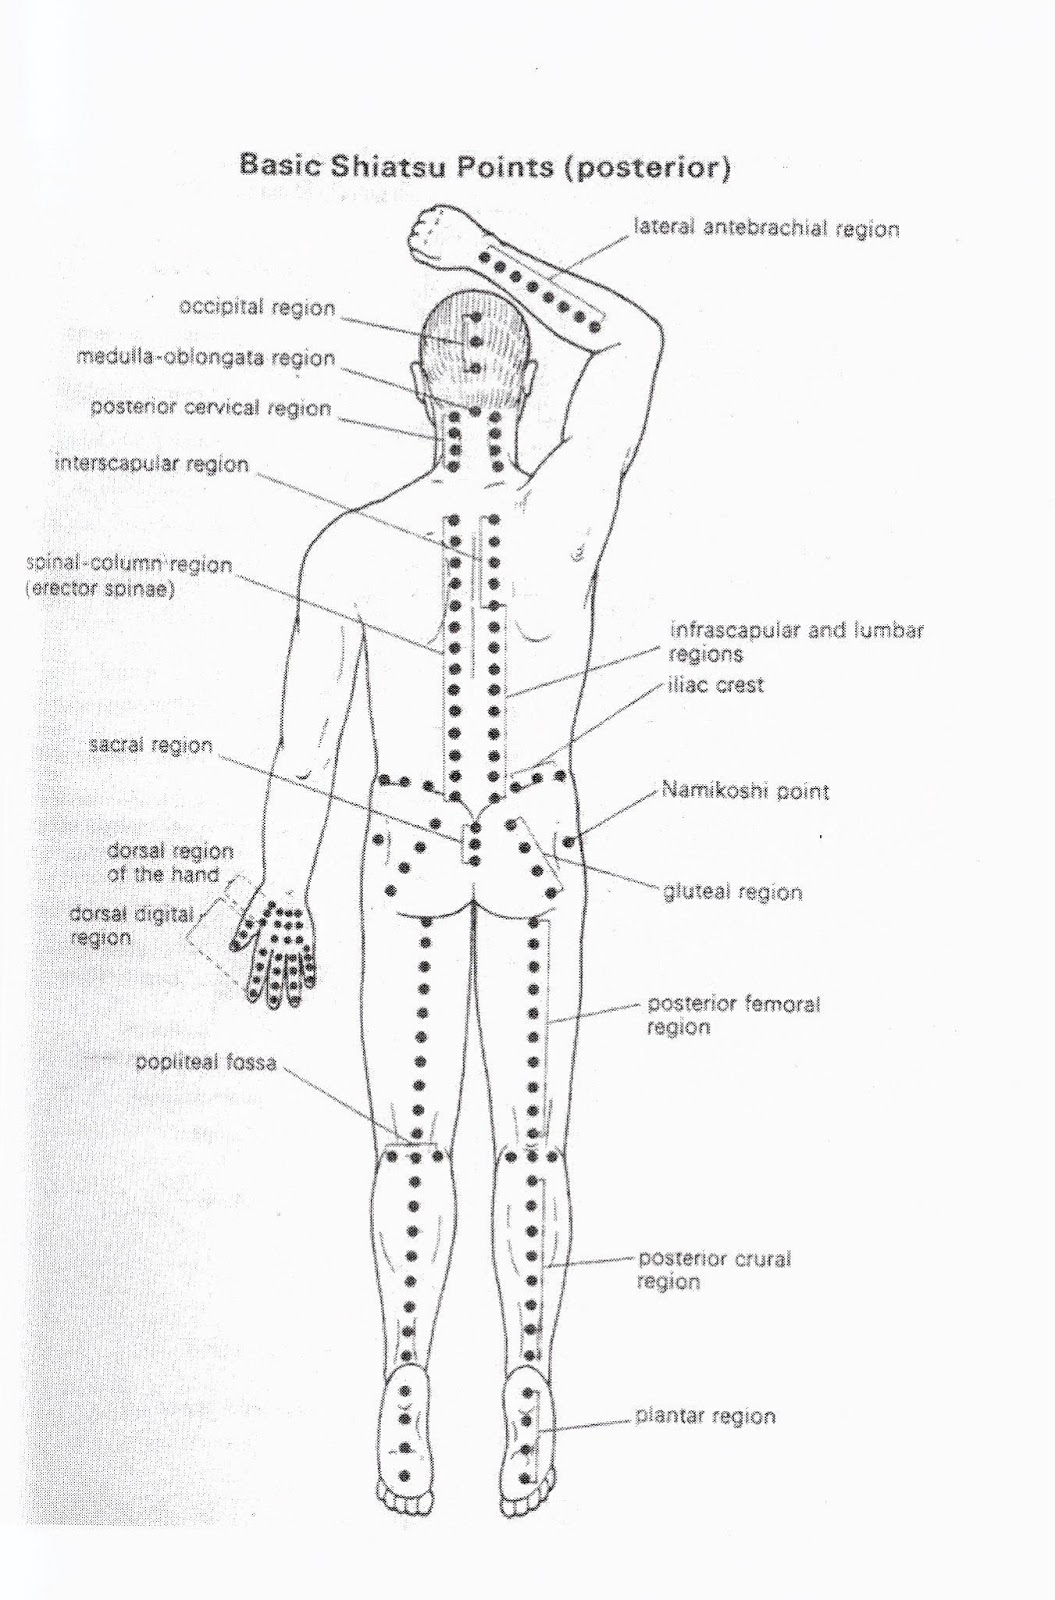 Osulima 5 Acupressure Therapy For Beauty And Health